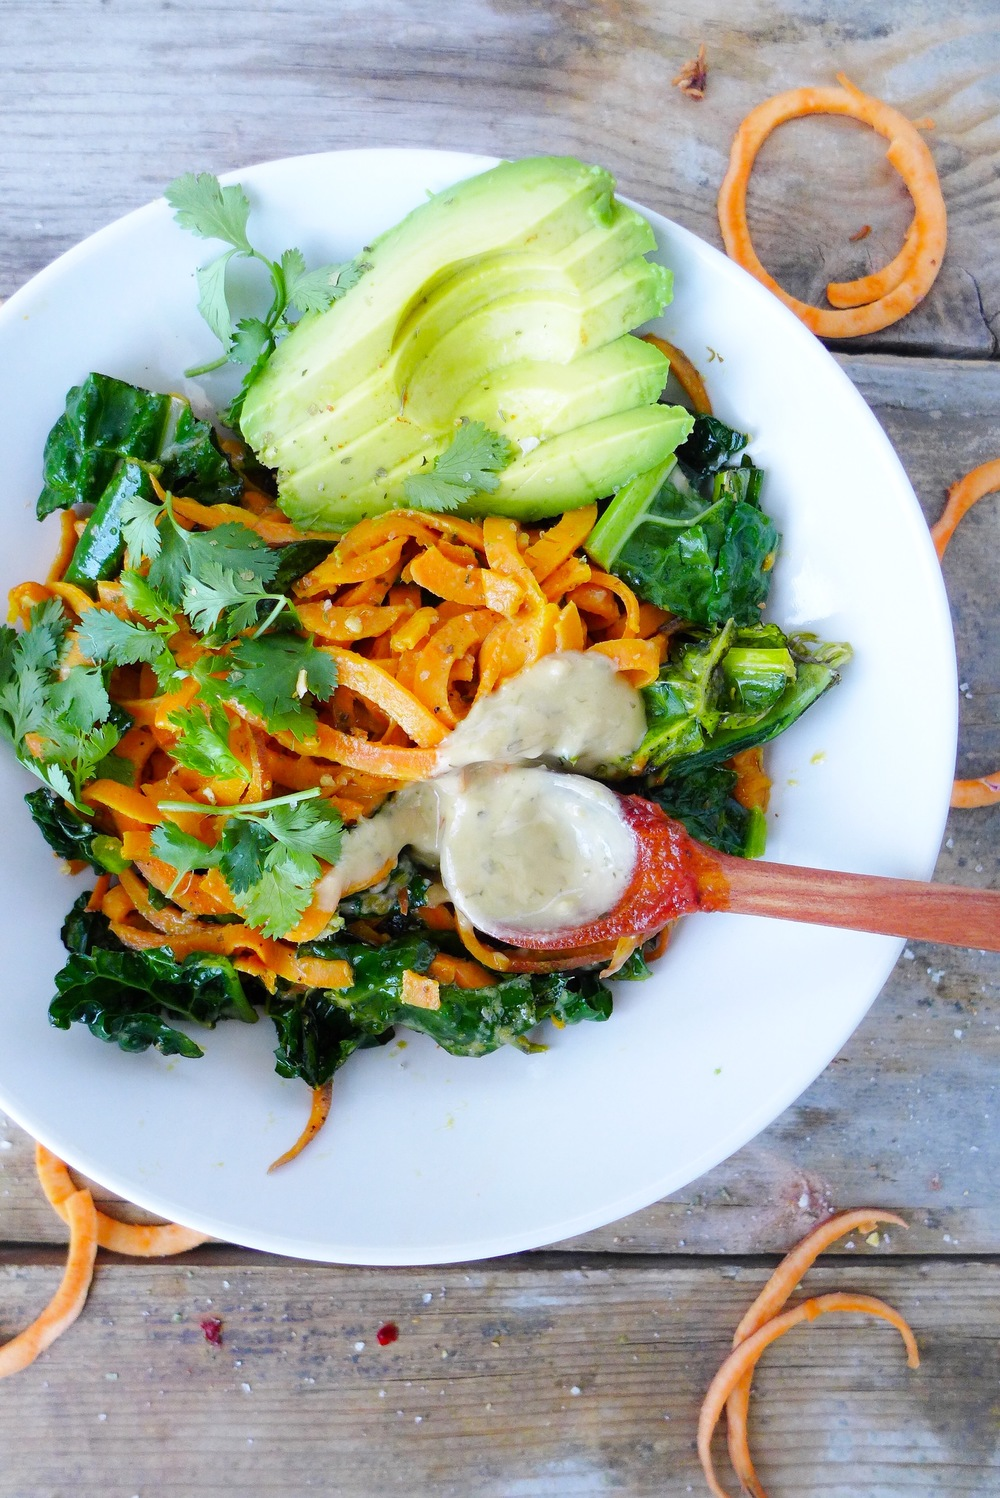 sweet-potato-noodles-kale-goddess-dressing.jpg